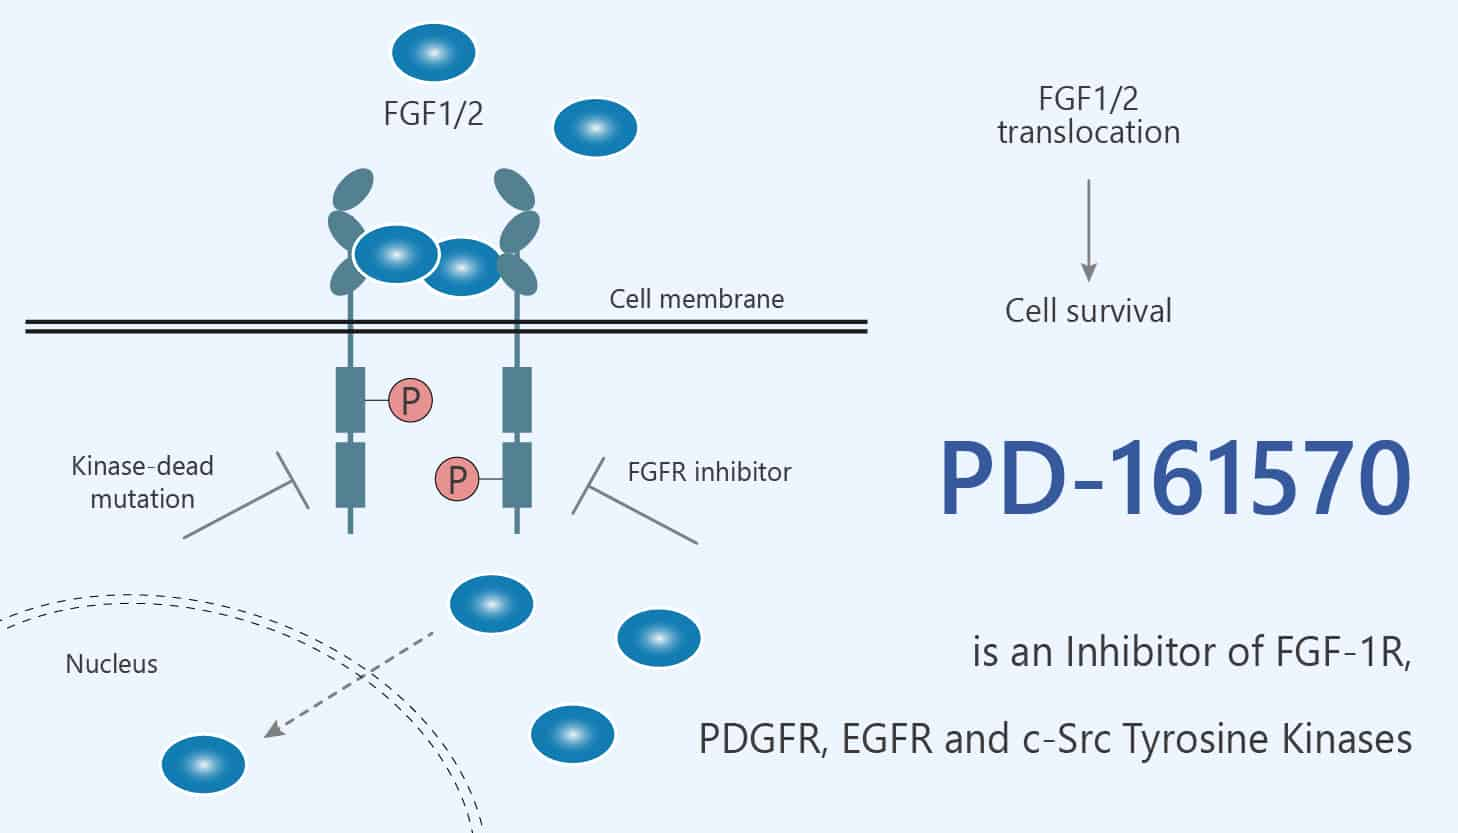 PD 161570 is an Inhibitor of FGF 1R PDGFR EGFR and c Src Tyrosine Kinases 2020 06 03 - PD-161570 is an Inhibitor of FGF-1R, PDGFR, EGFR and c-Src Tyrosine Kinases